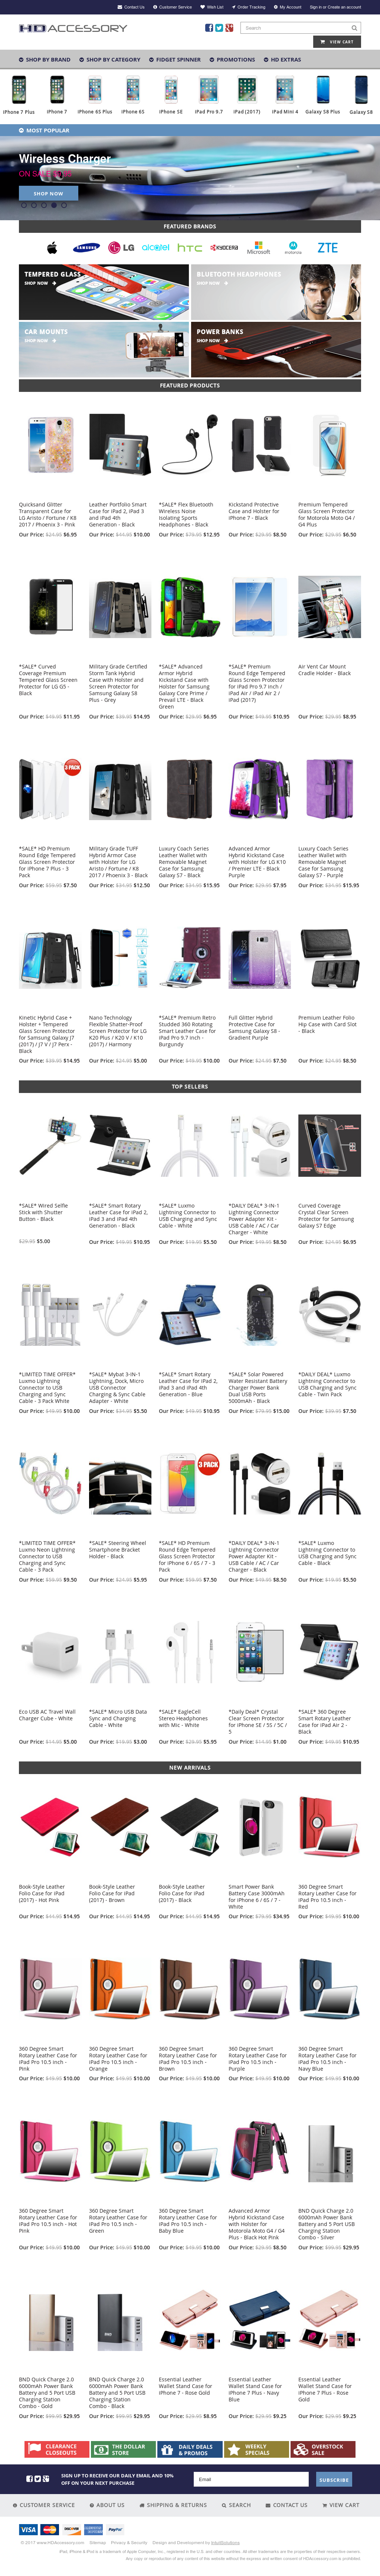 HD Accessory is a mid-size mobile phone accessories retailer which operates the website quidrizanon.ga As of today, we have 7 active HD Accessory promo codes and 1 sale. The Dealspotr community last updated this page on November 21, /4(1).